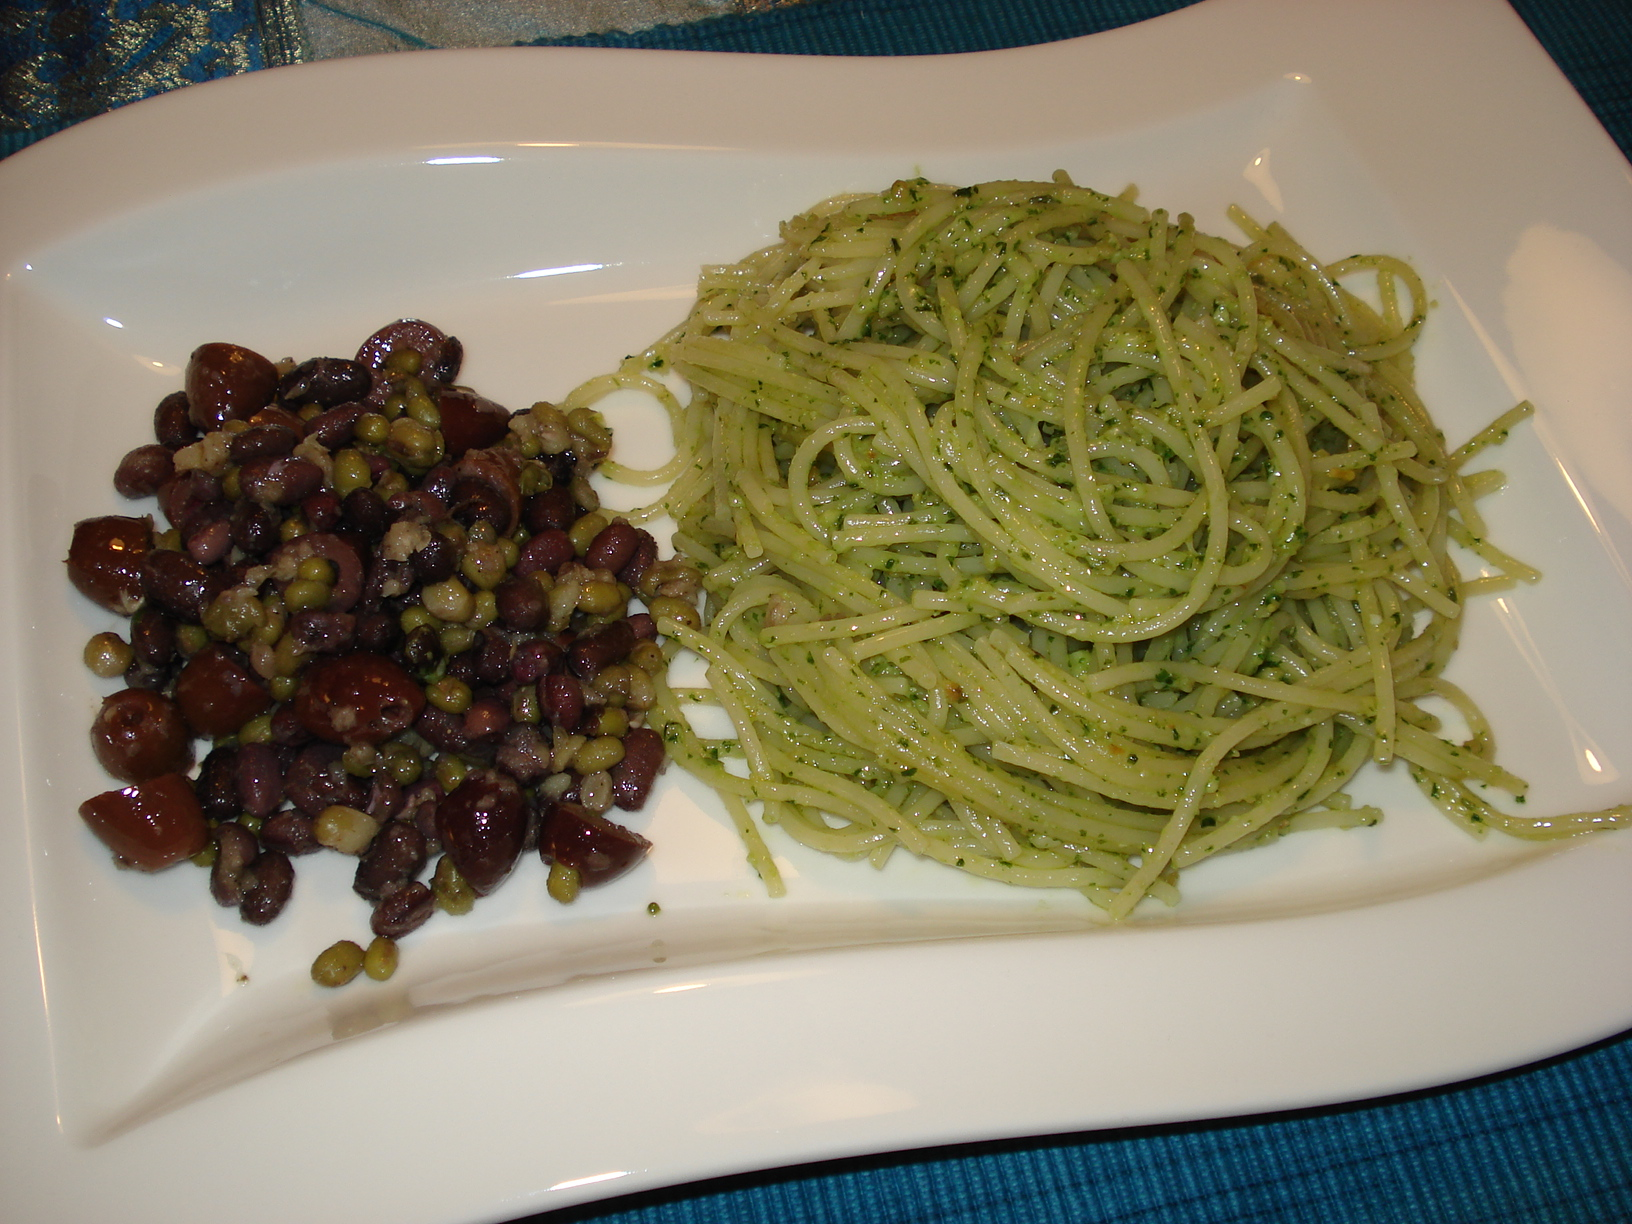 Pasta with pesto and Mediterranean bean salad